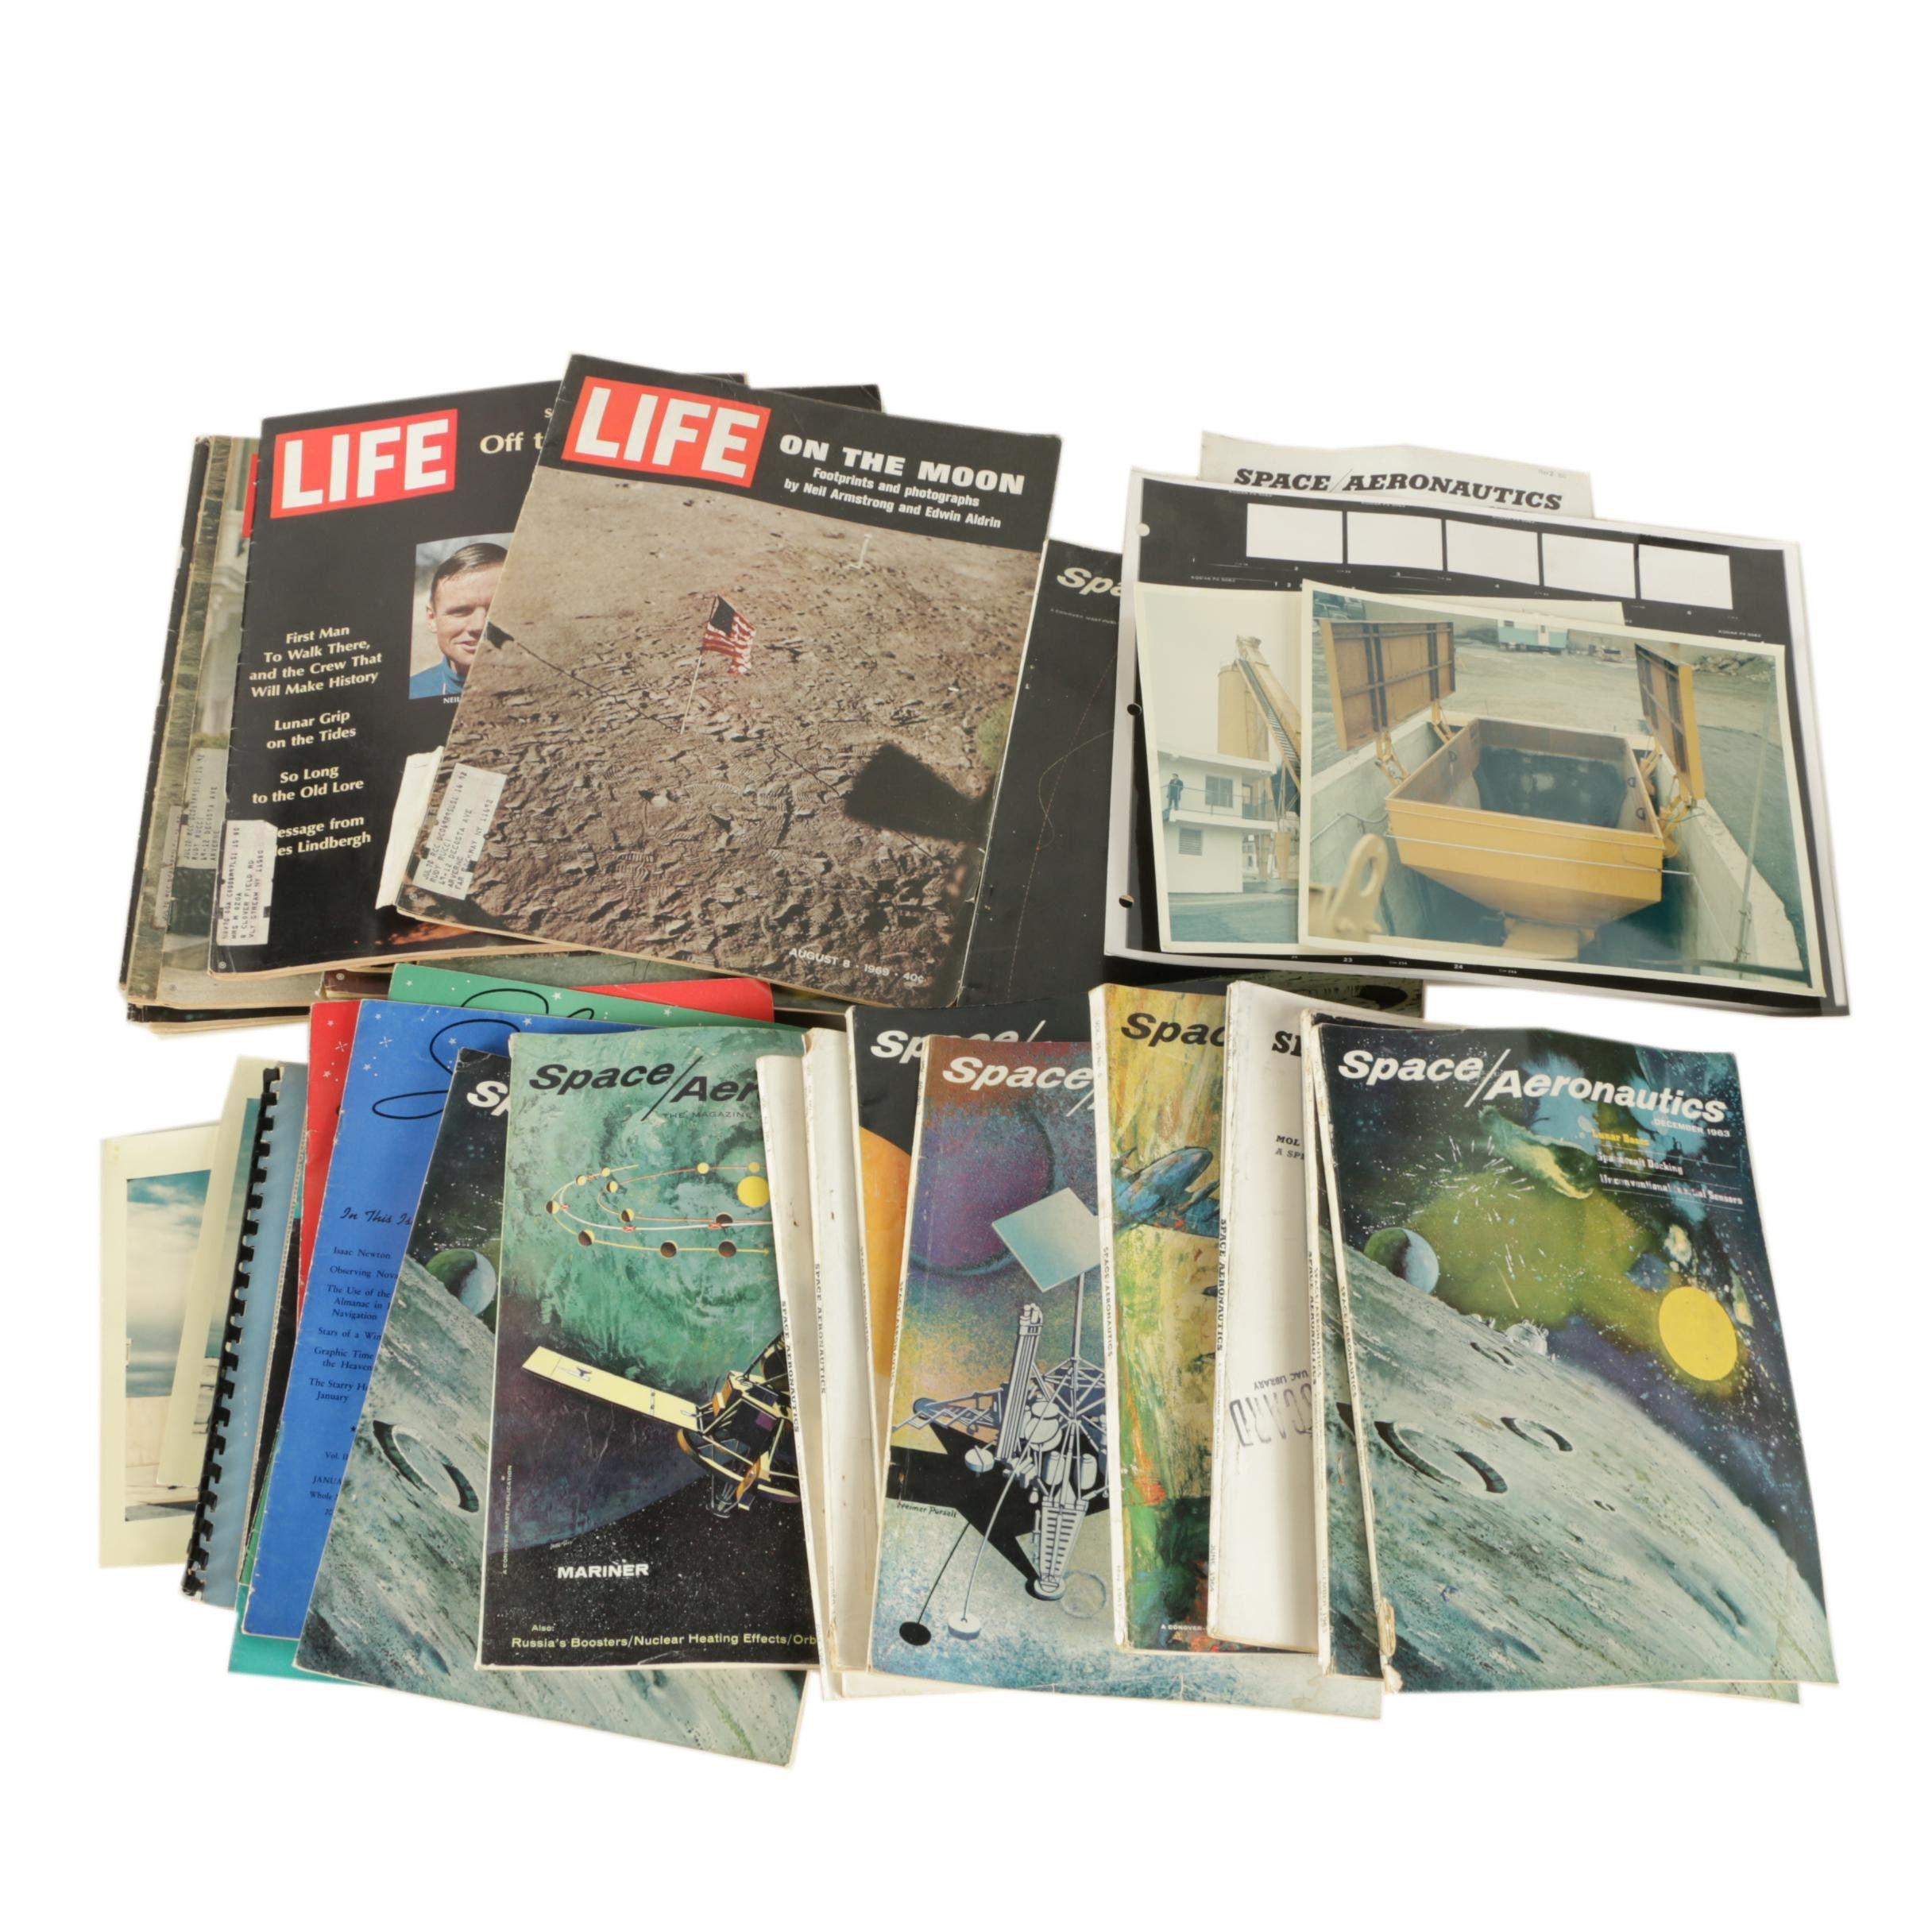 Assortment of Magazines and Photographs